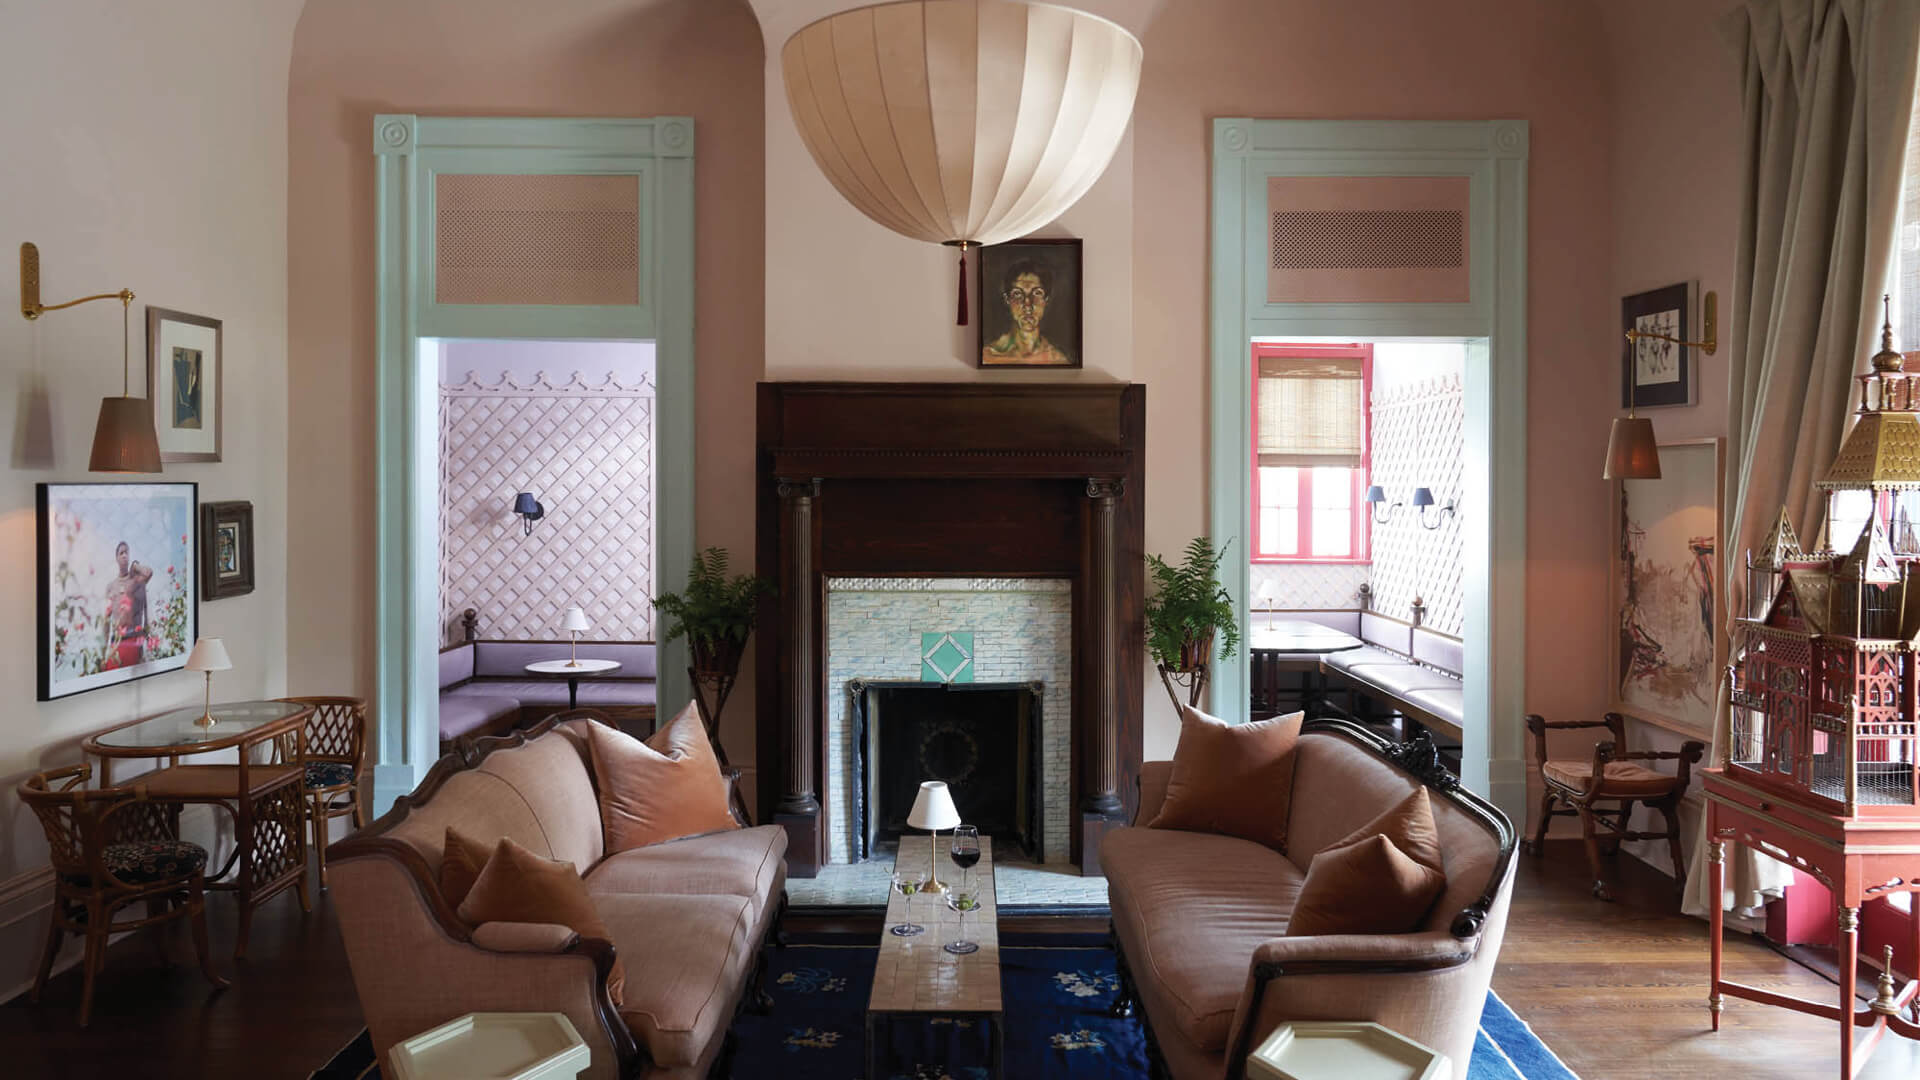 Inside The Chloe, a new hotel, bar and restaurant in New Orleans by decorator Sara Ruffin Costello | The Chloe designed by Sara Costello | STIRworld